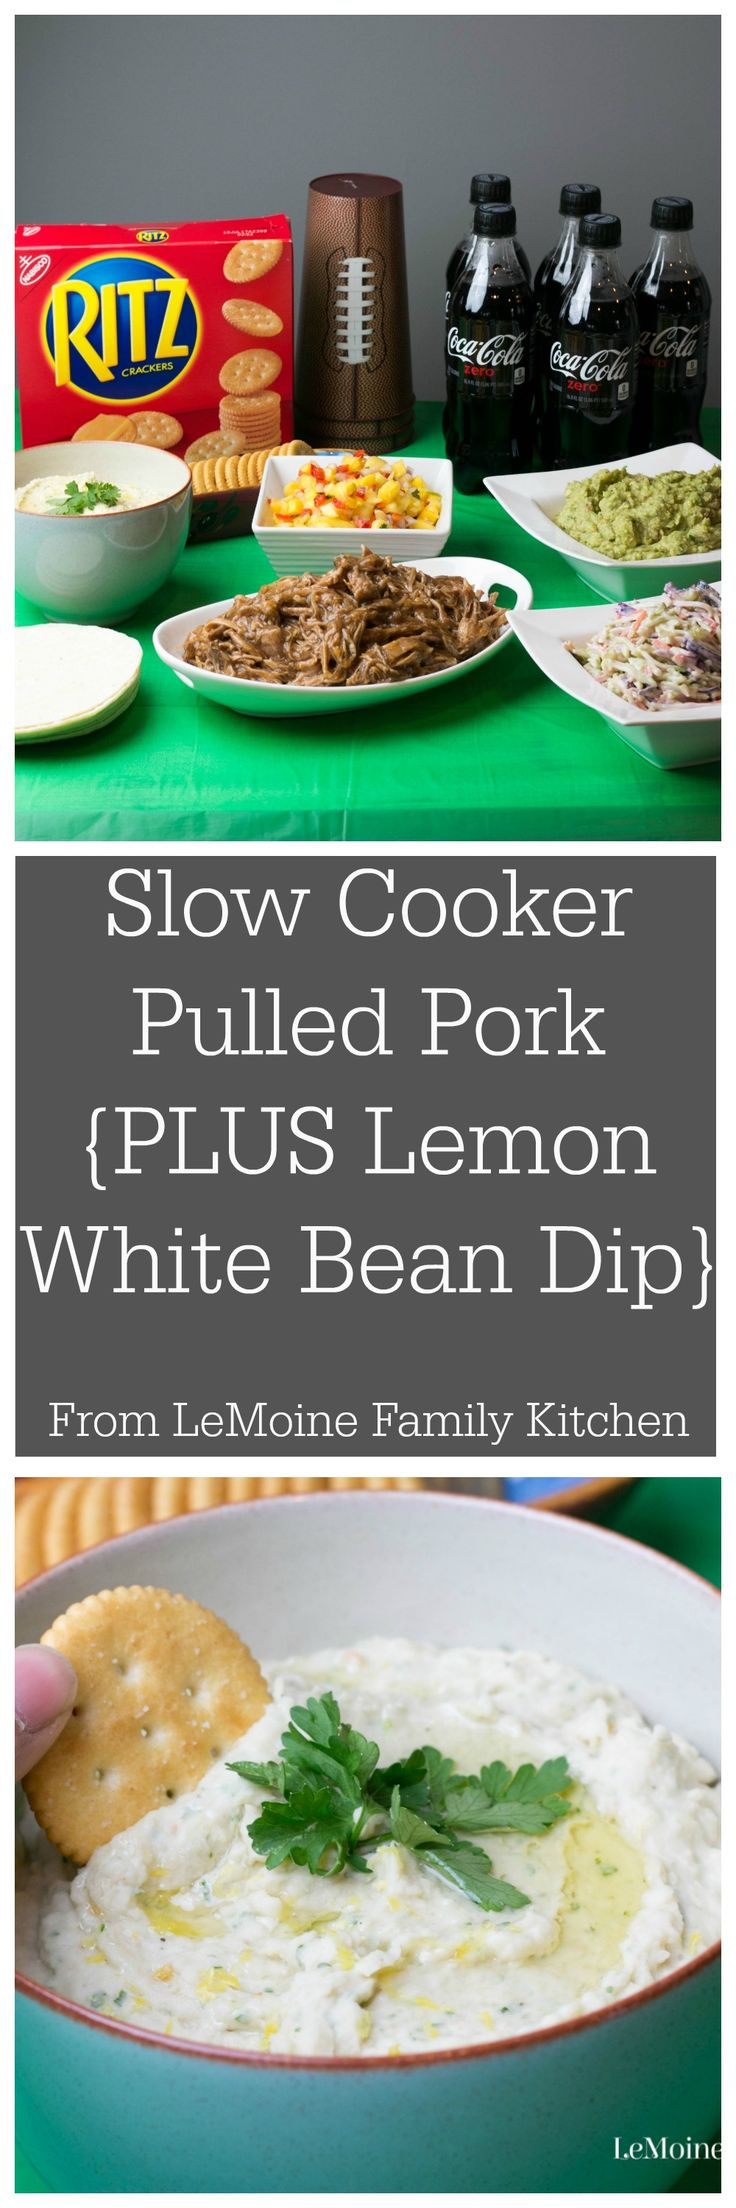 Try these two fantastic recipes that are a MUST make for your next get get together! This Pulled Pork Taco Bar & Lemon White Bean Dip will score you a touchdown with friends and family. A little bonus, these are way lighter then traditional football eats, so go ahead and ENJOY!